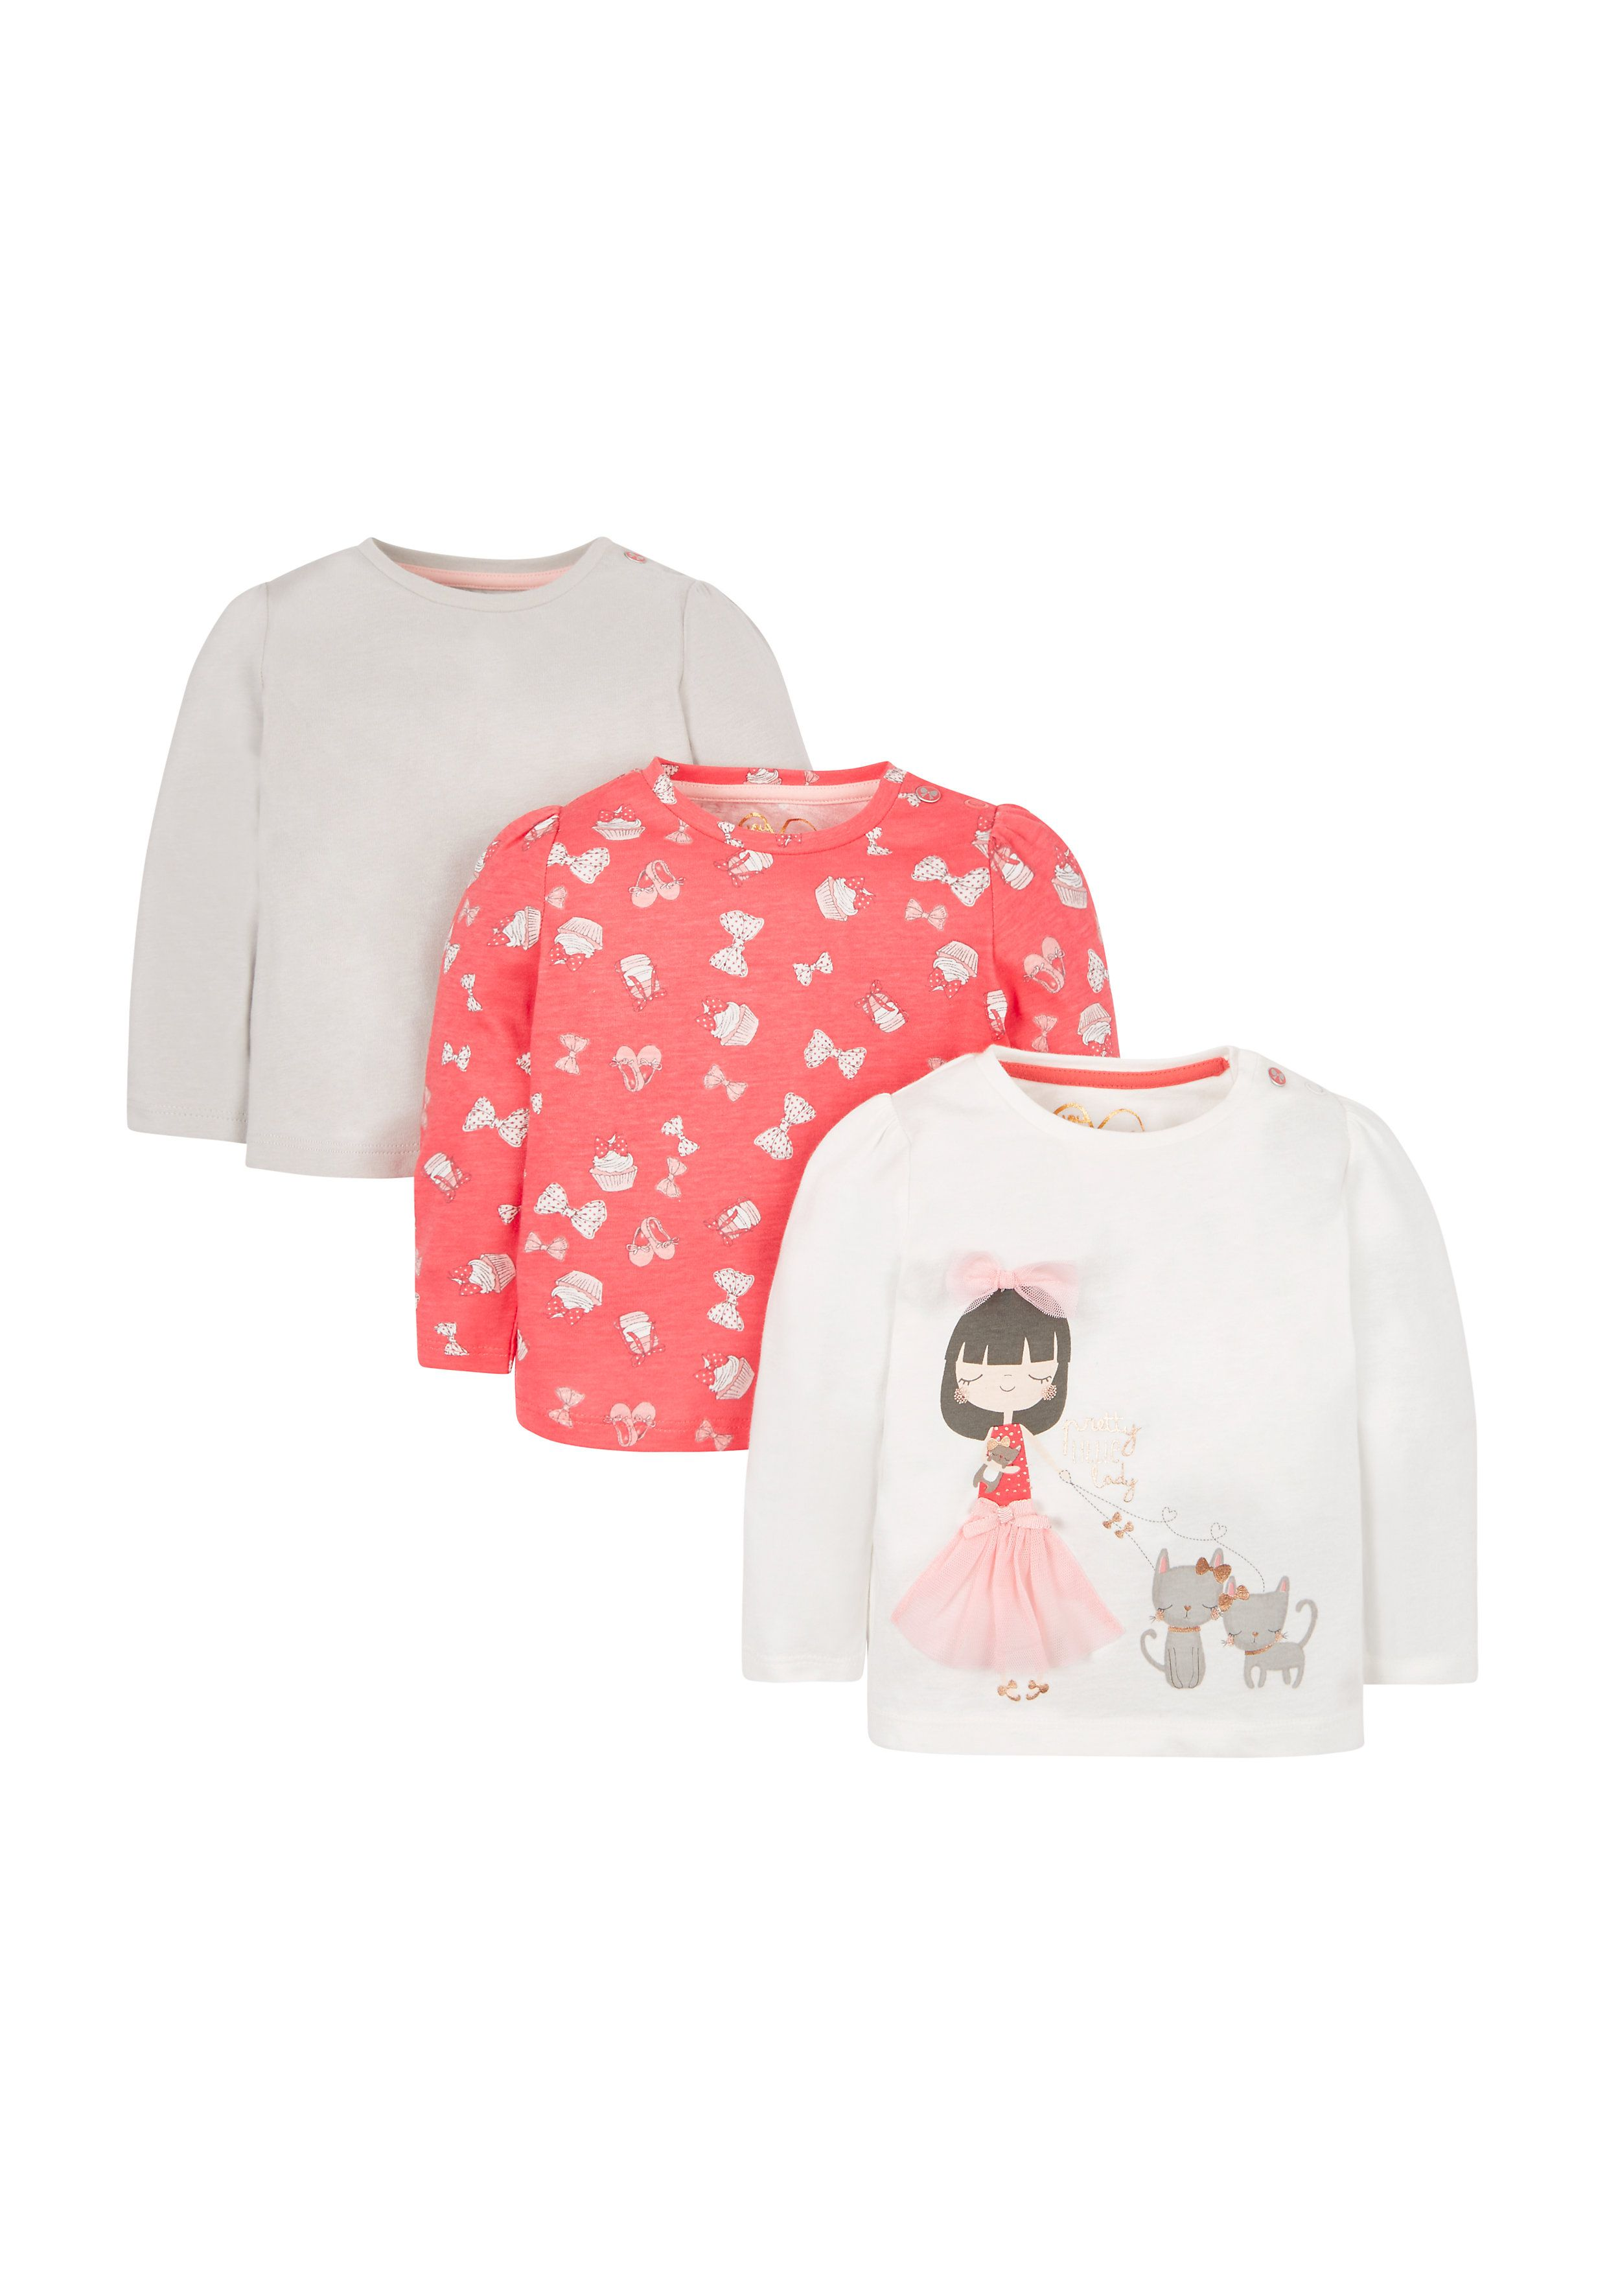 Mothercare | T-Shirts - 3 Pack